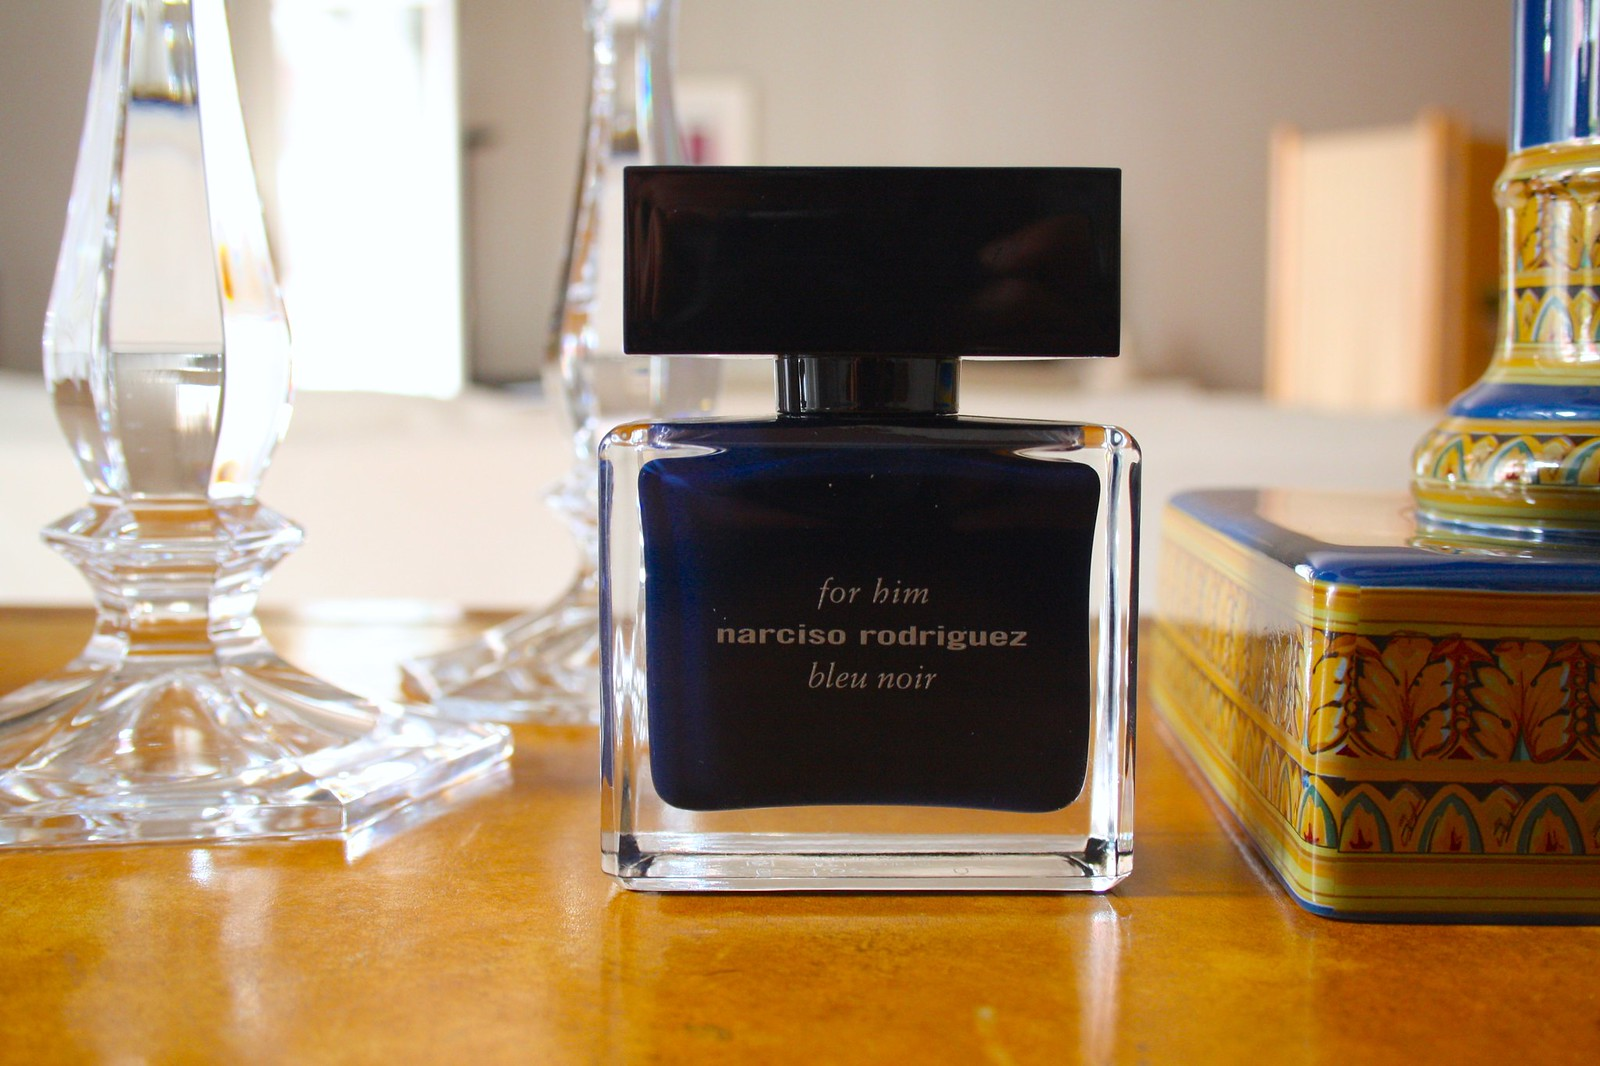 narciso-rodriguez-for-him-bleu-noir-01